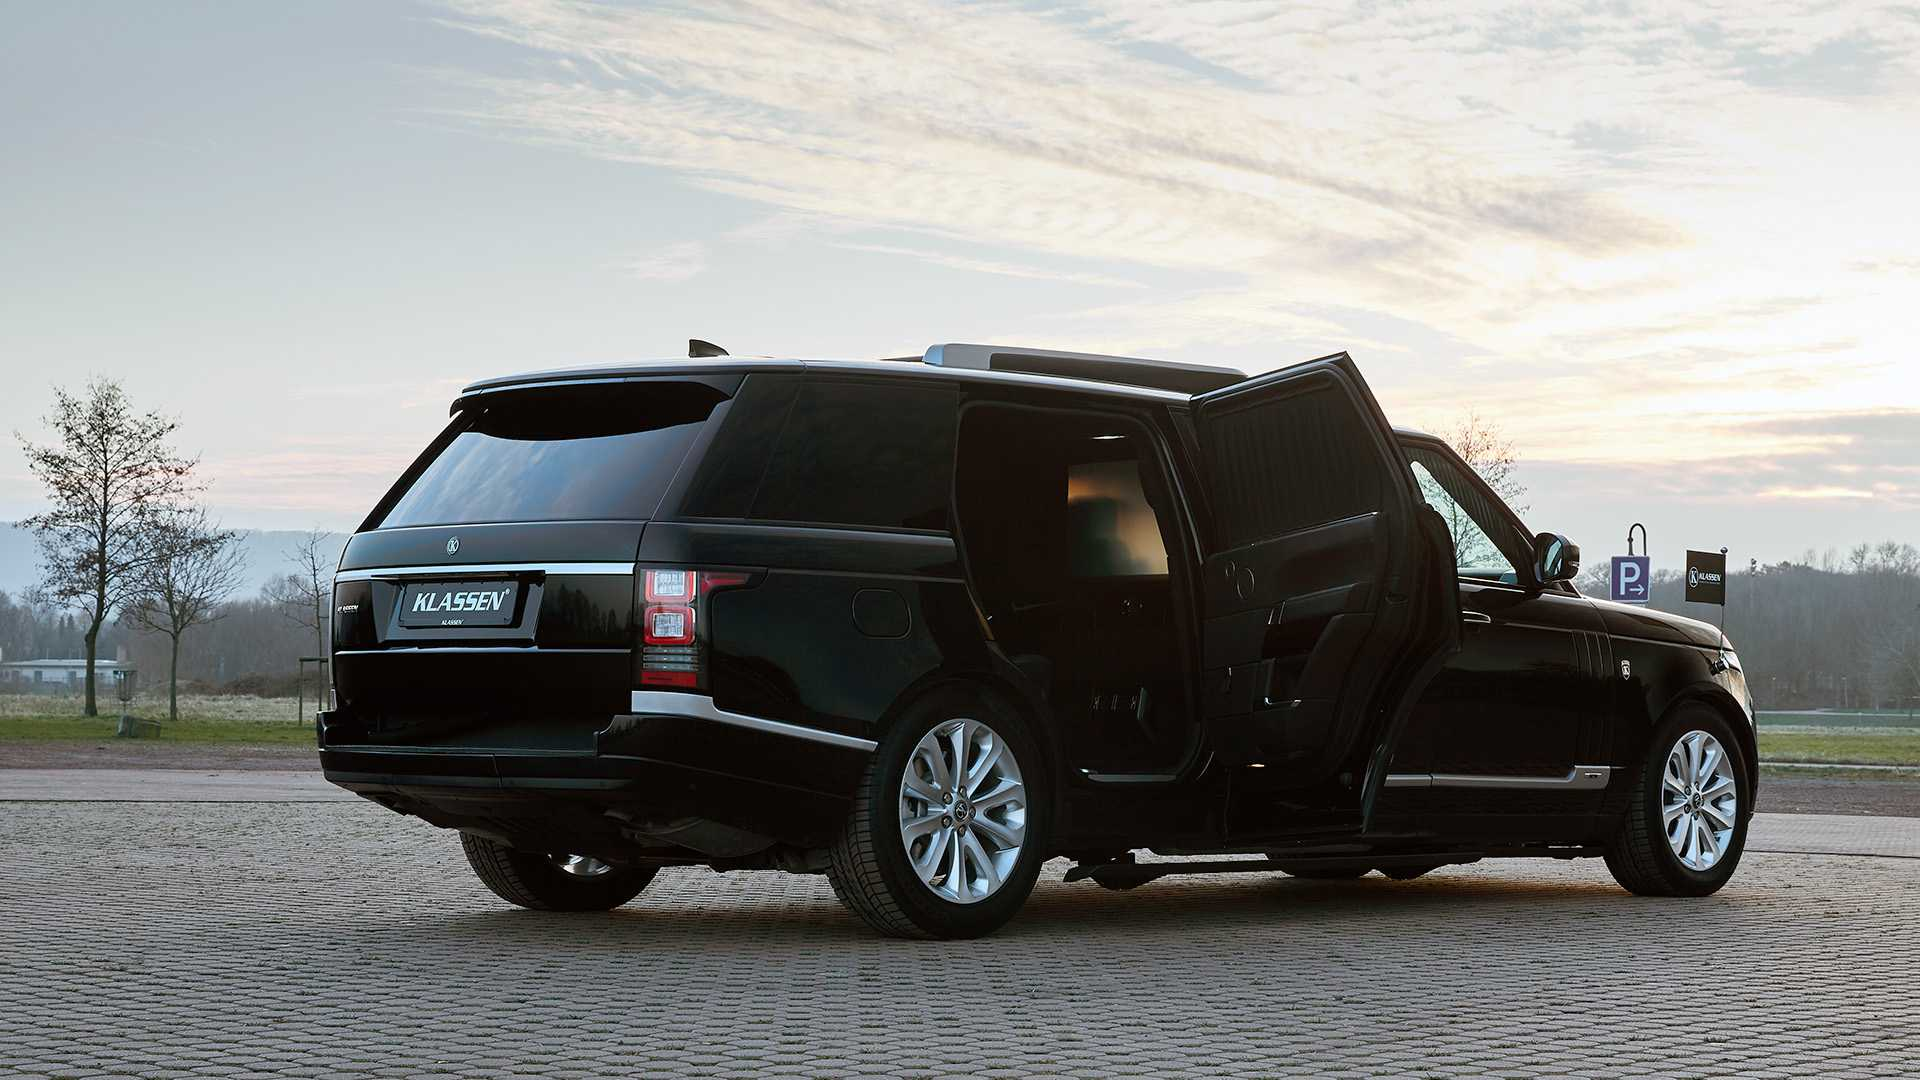 klassen-stretched-land-rover-range-rover-autobiography-11